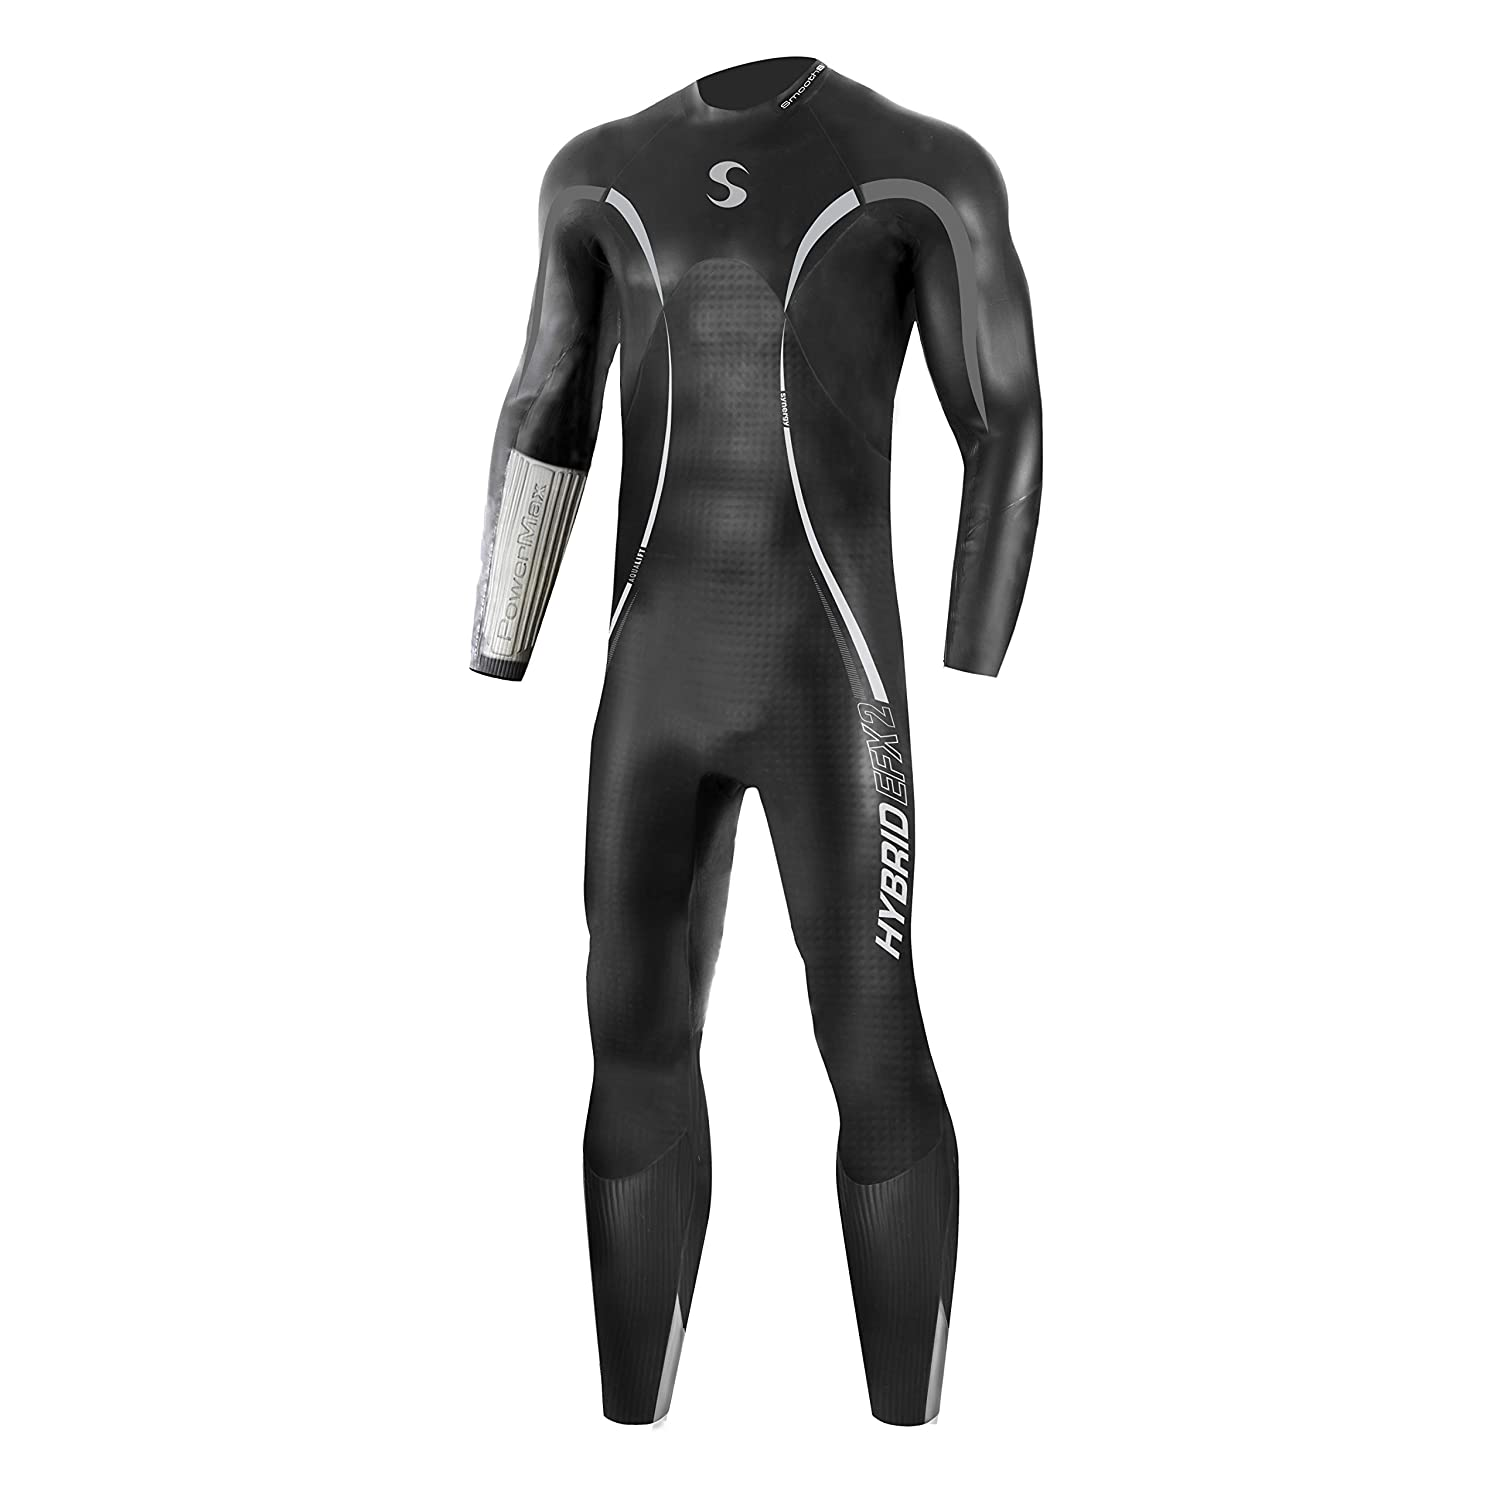 3ee0f9fec4b Amazon.com: Synergy Triathlon Wetsuit - Men's Hybrid Fullsleeve Smoothskin  Neoprene for Open Water Swimming Ironman & USAT Approved: Sports & Outdoors